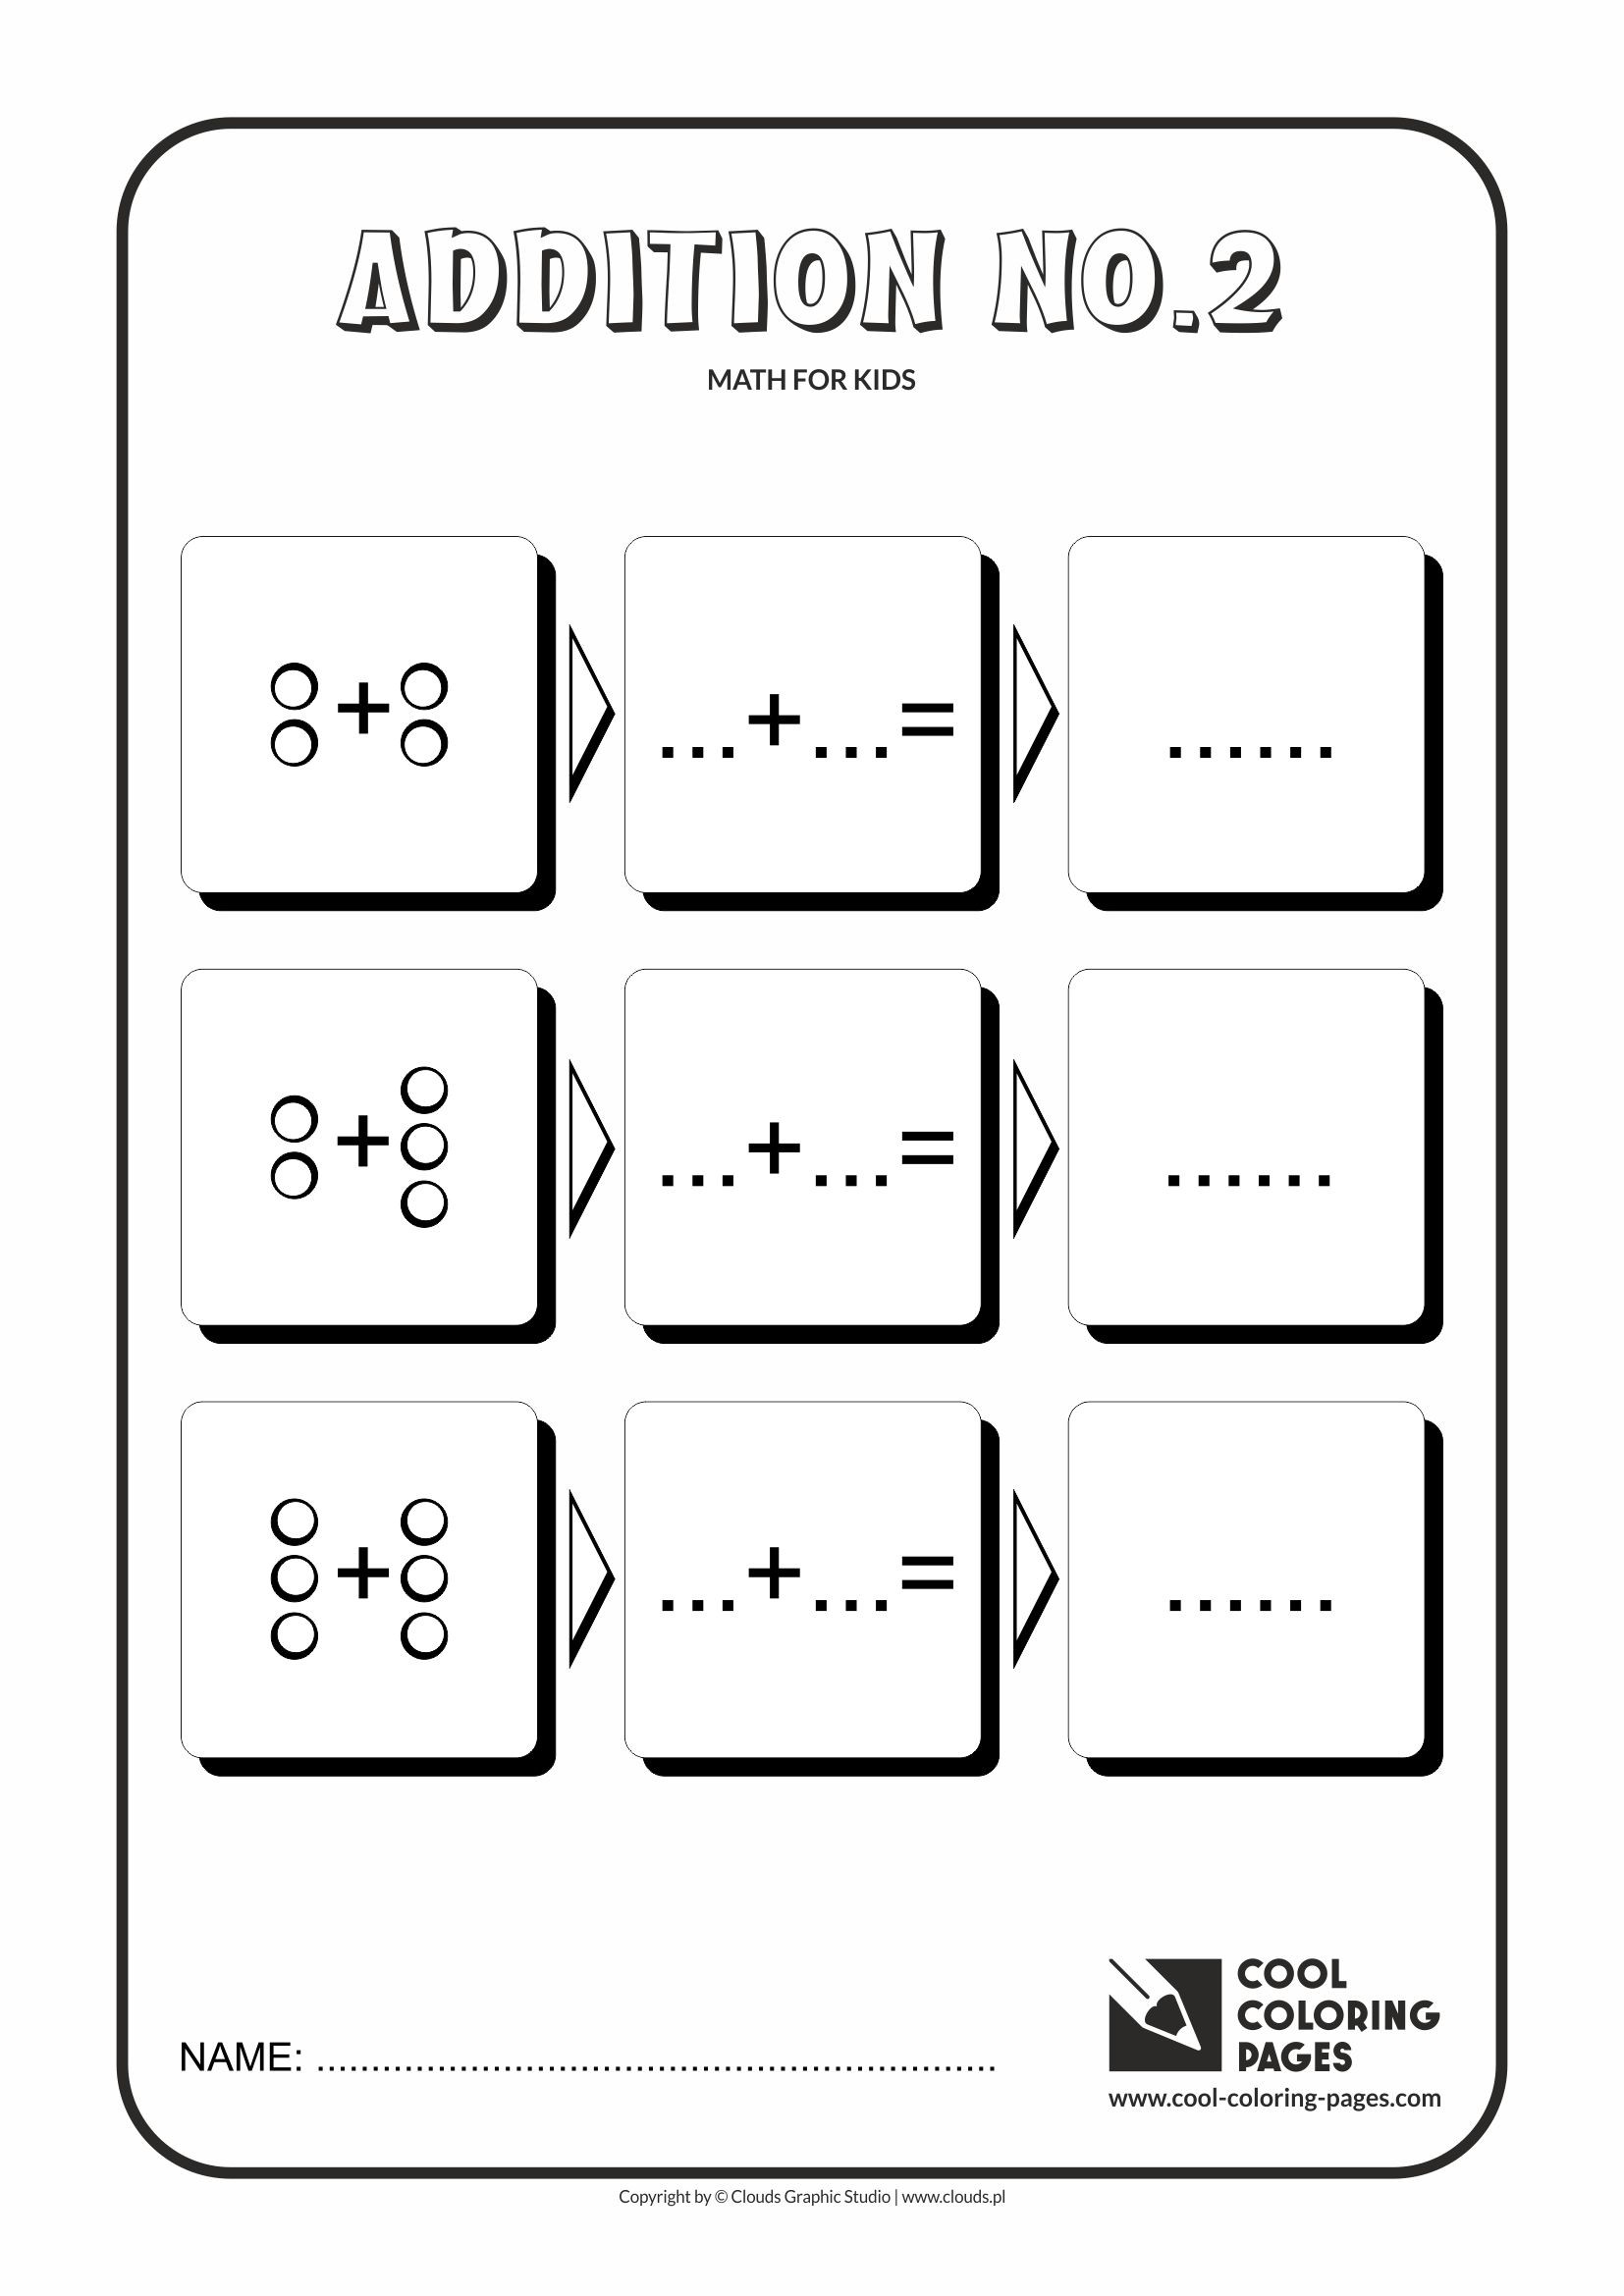 Best ideas about Printable Coloring Sheets For Kids With Math . Save or Pin Cool Coloring Pages Math for kids Cool Coloring Pages Now.